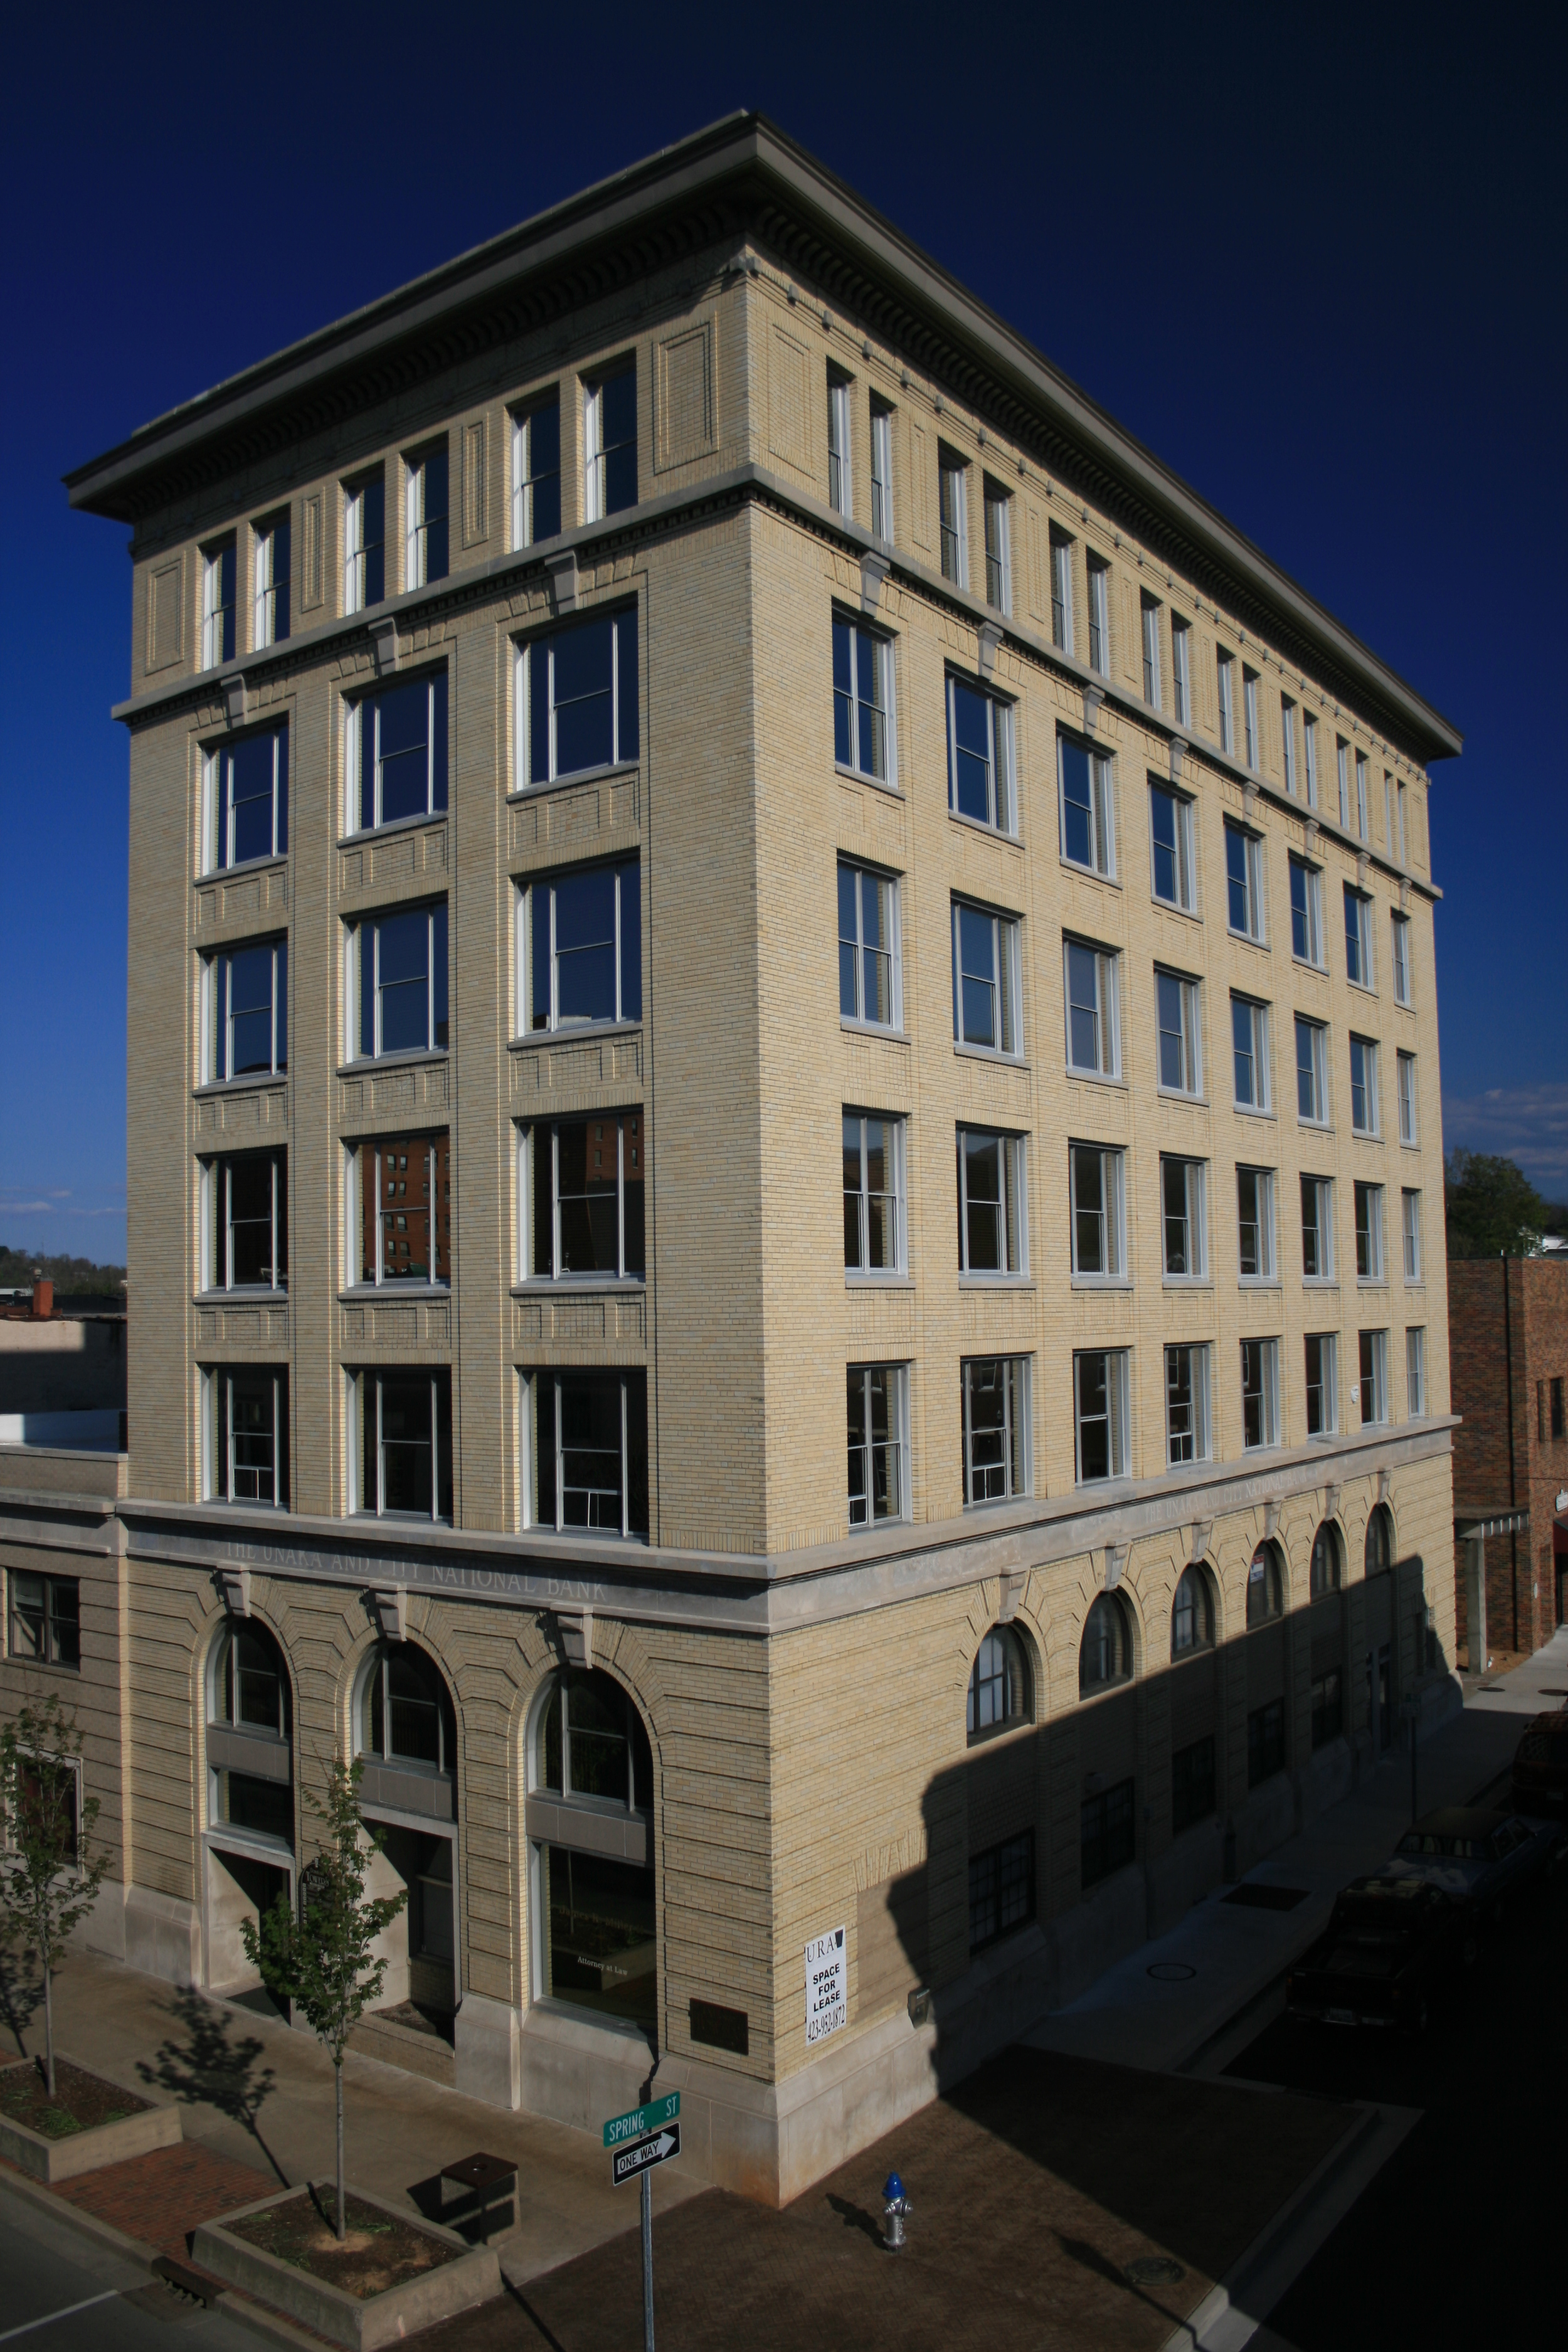 The Downtown Towers - Johnson City, TN - Built in 1921 - 7 Stories - Beaux Arts/Historism Style - Residential/Commercial ffice Use